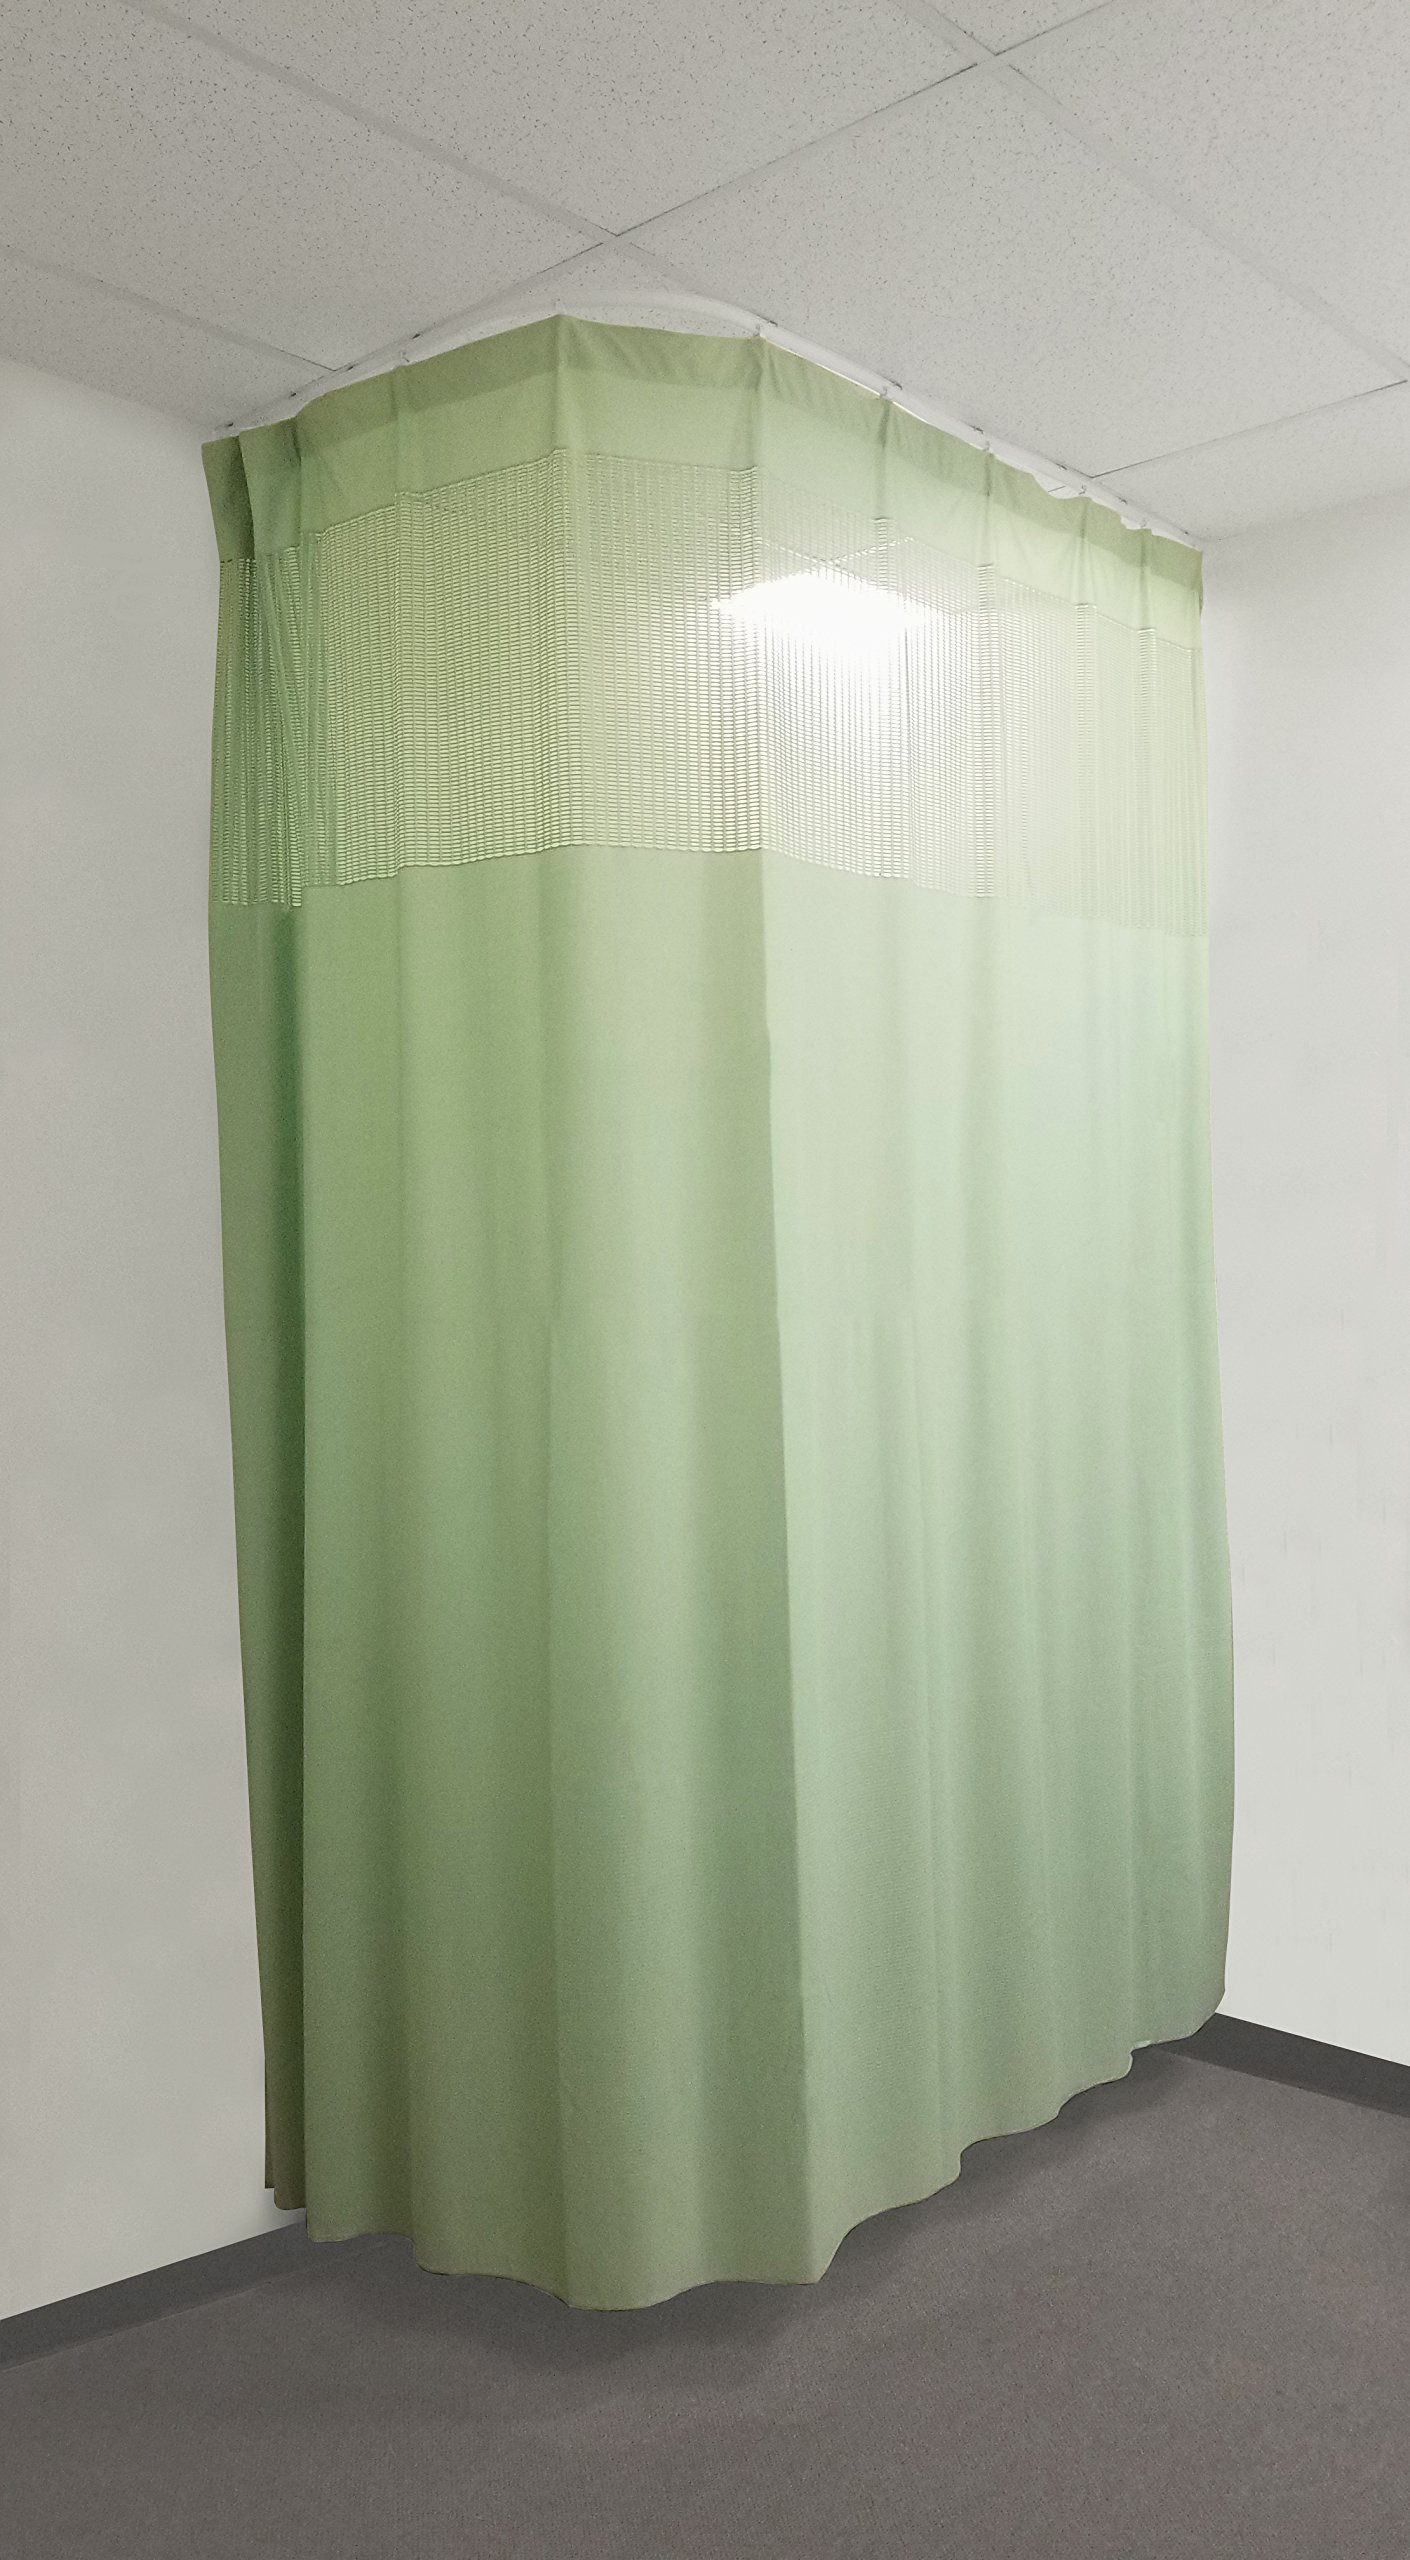 16Ft Medical Privacy Flexible Curtains High Ceiling Hospital Lab Clinic Curved Room Decorative w/ Track- 10ft High (Green)